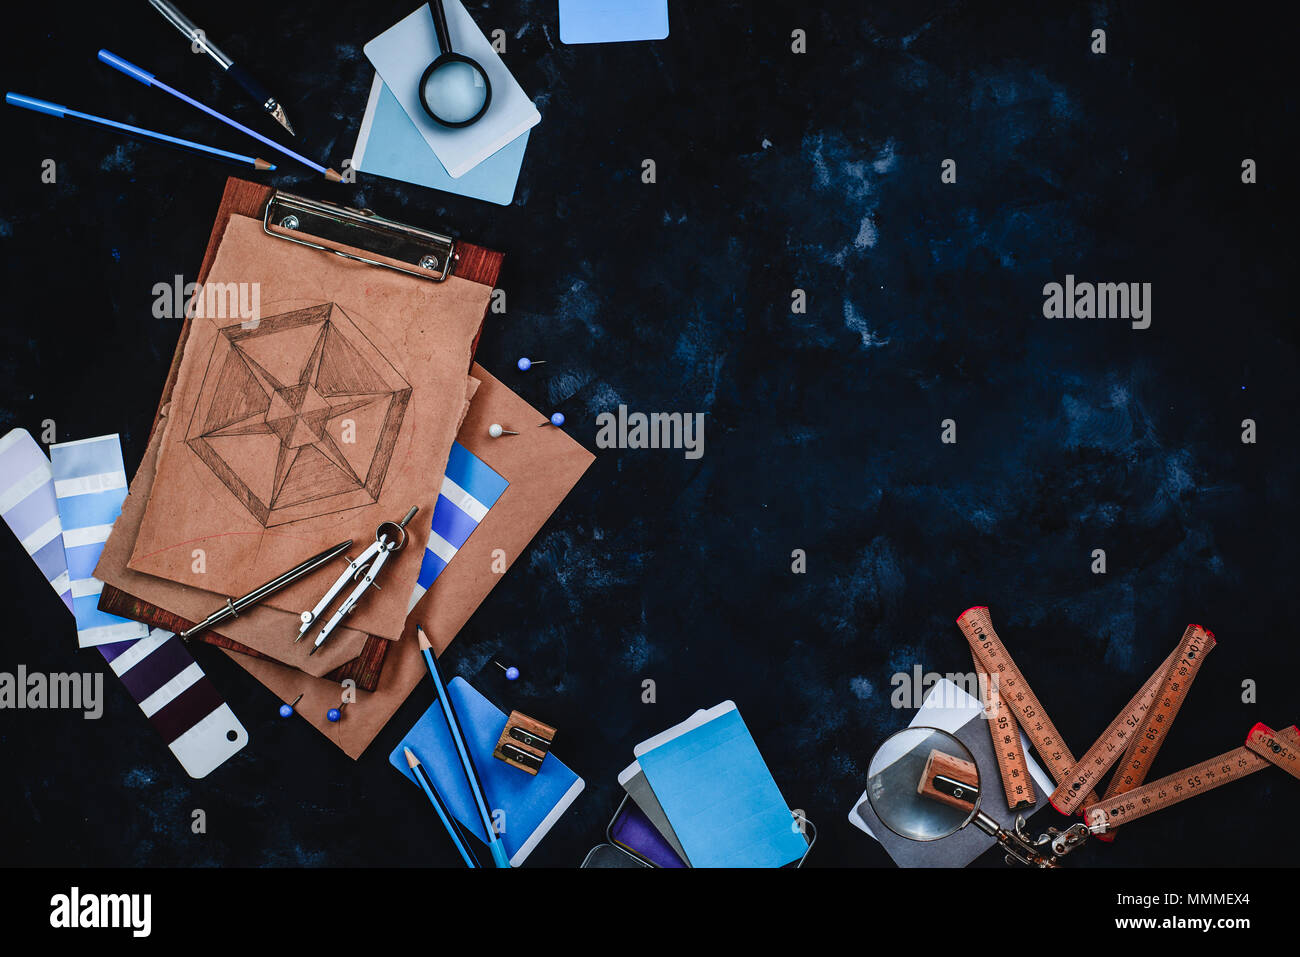 Contractor and architecture concept with craft paper, sketches, compasses, rulers, clipboards and pencils on a dark stone background with copy space. - Stock Image